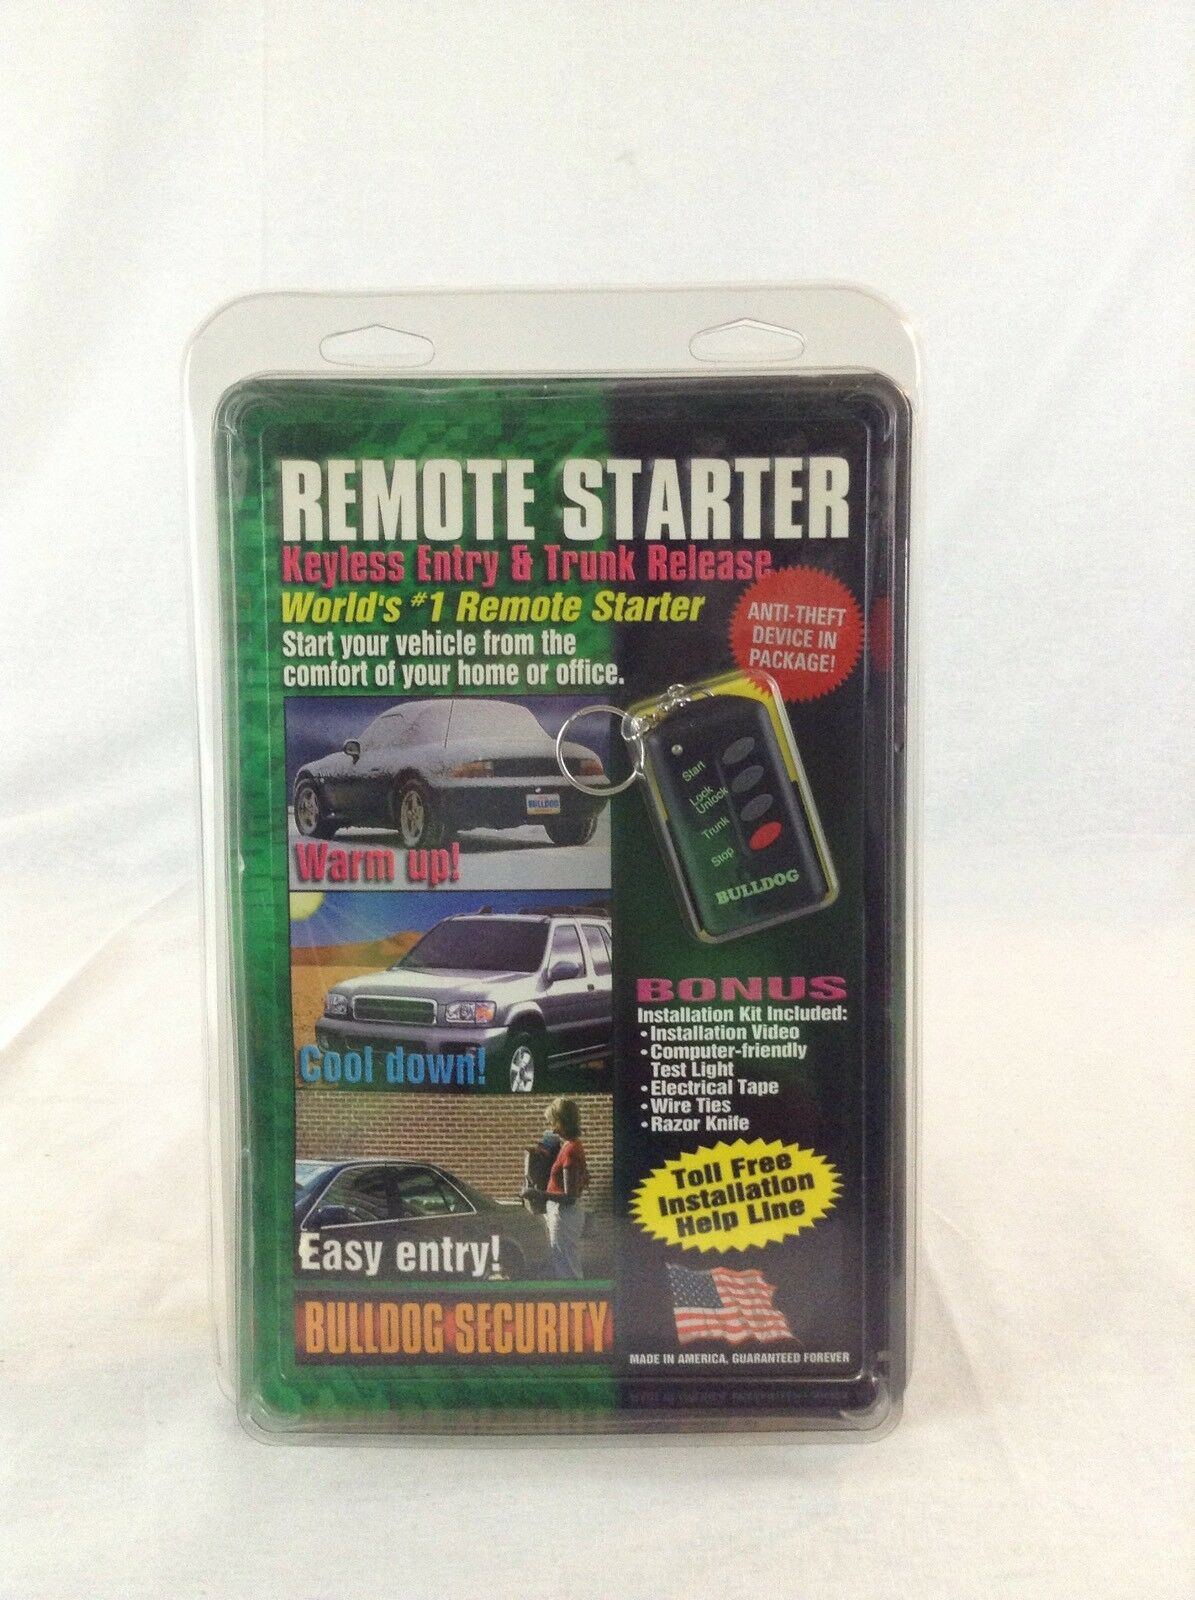 Famous Bulldog Security Remote Starter With Keyless Entry Thick Super Switch Wiring Shaped Security Bulldog Ibanez Dimarzio Old Bulldog Alarms Wiring BlueOff Grid Solar Wiring Diagram Remote Control Car Starter Bulldog Security Model RS102 | EBay